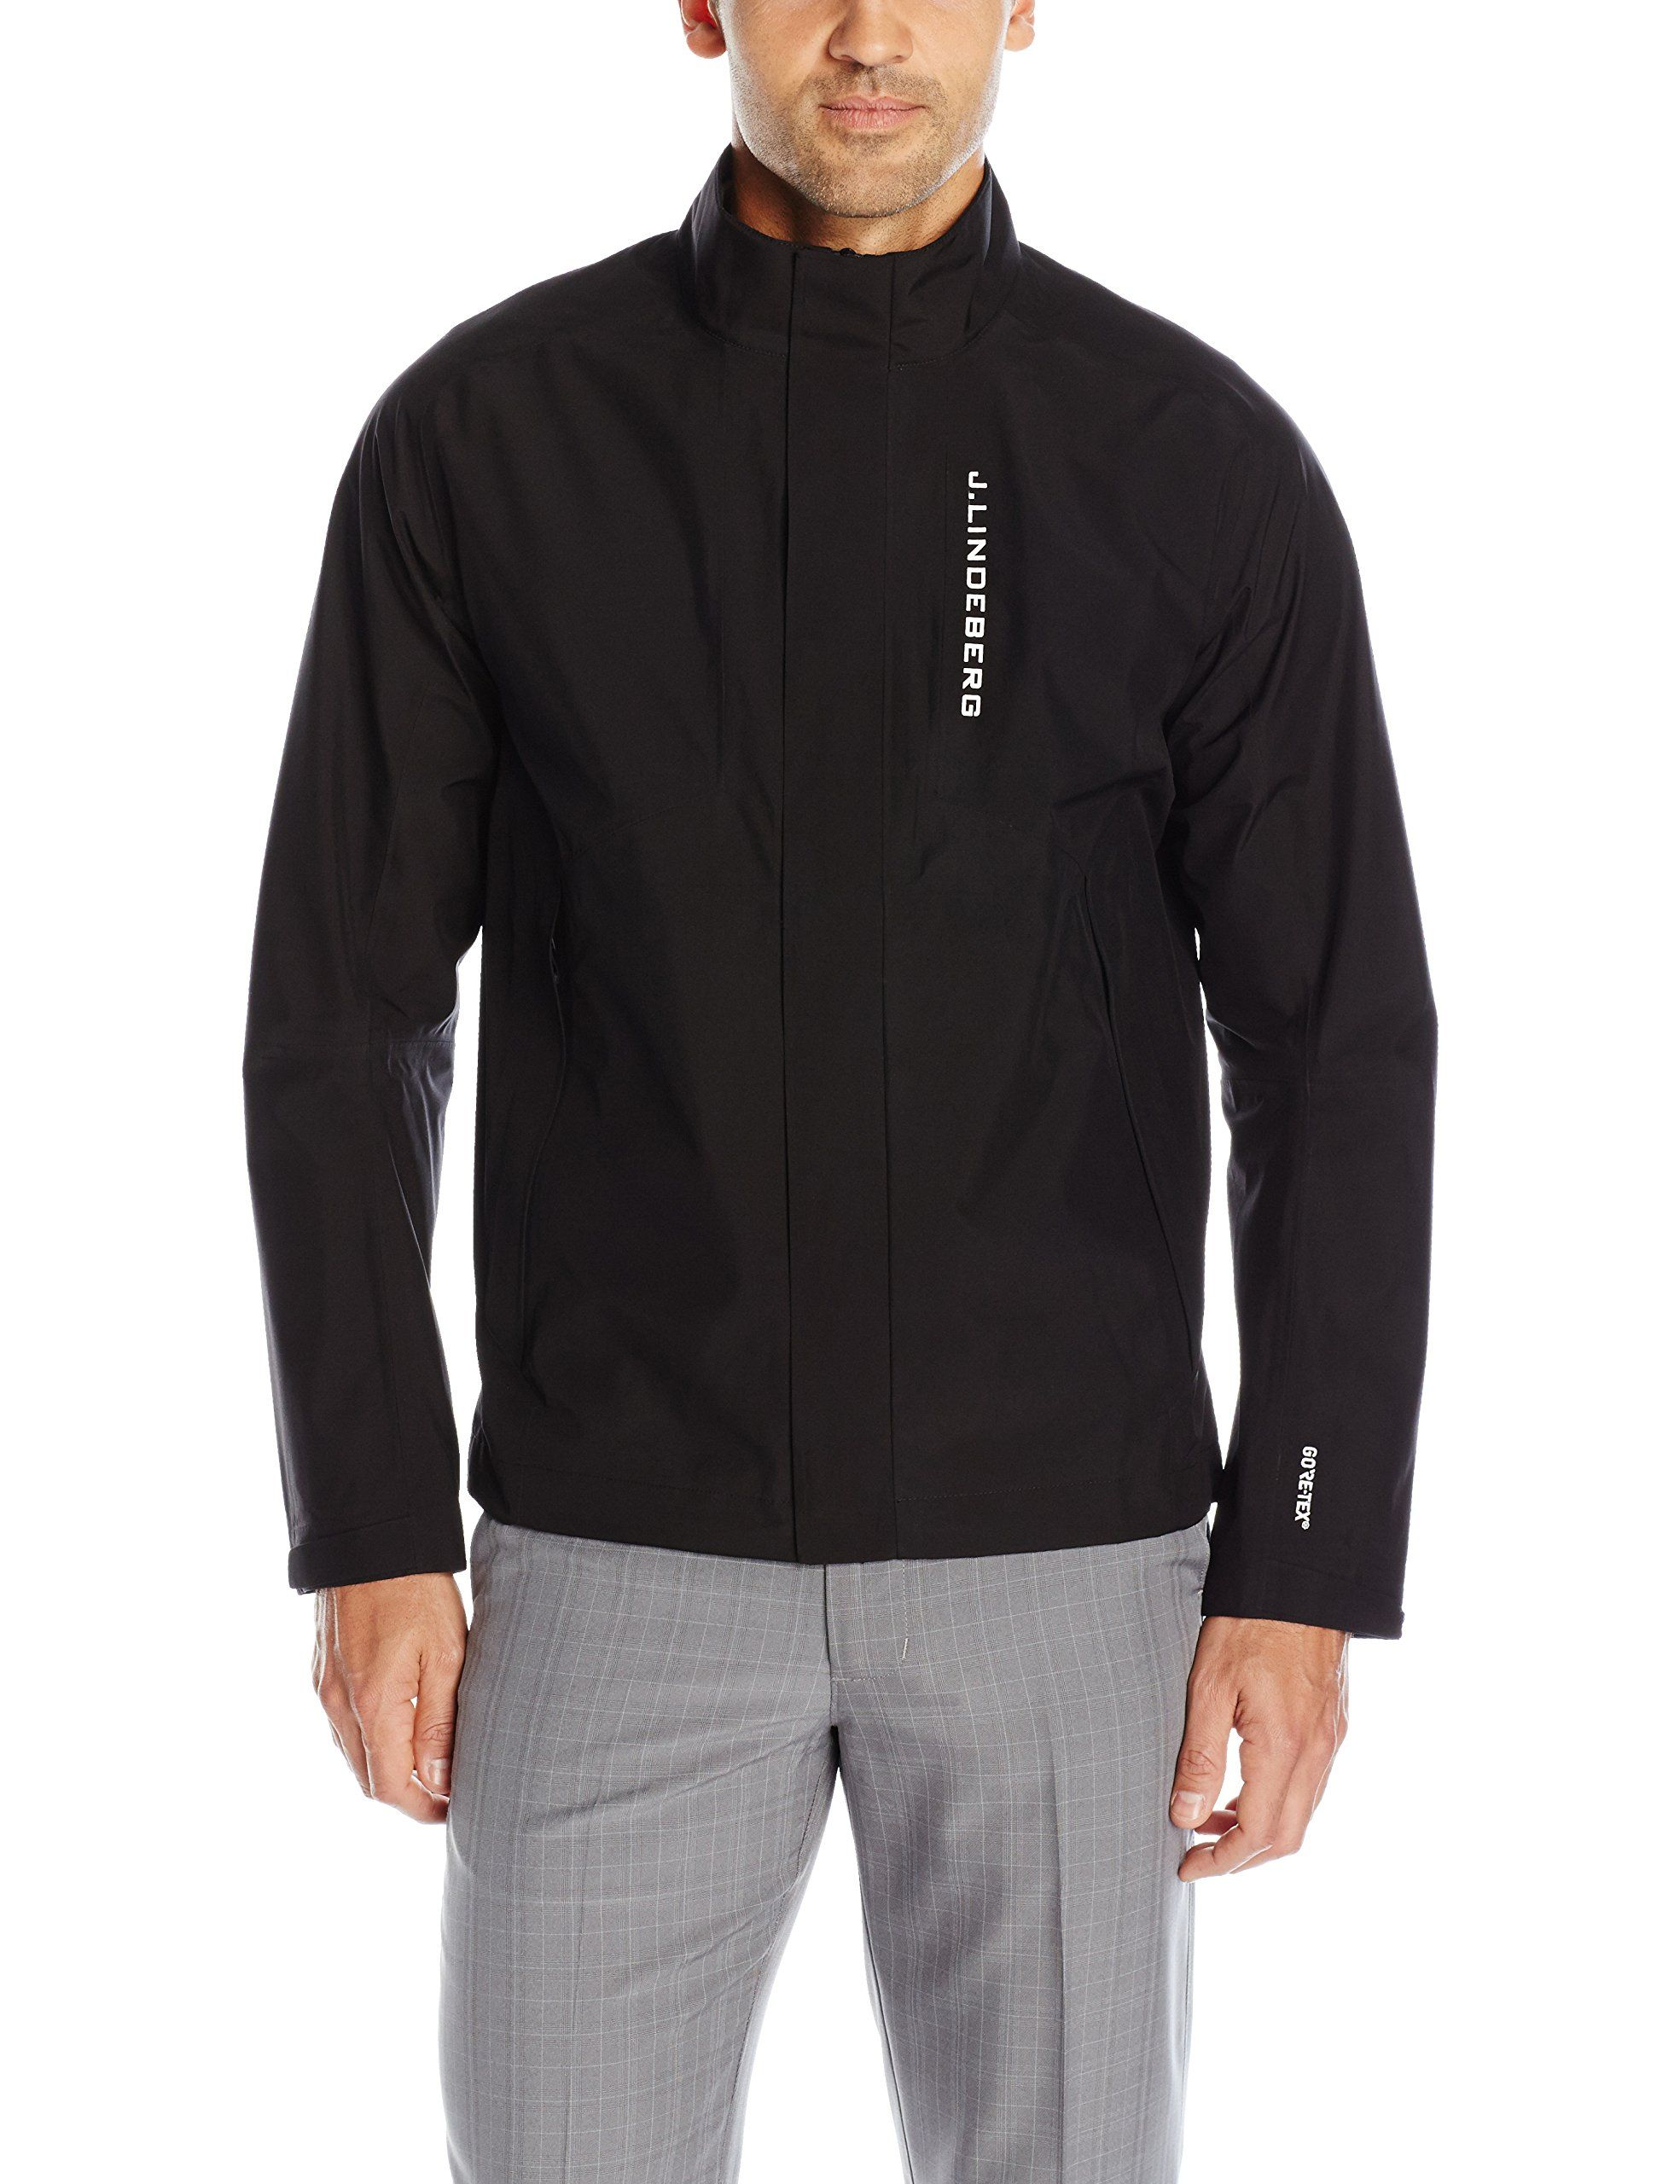 Golf Clothing     J.Lindeberg Mens Gore Paclite Jacket Black M     See this  fantastic product. (This is an affiliate link). 1bbd73bdb